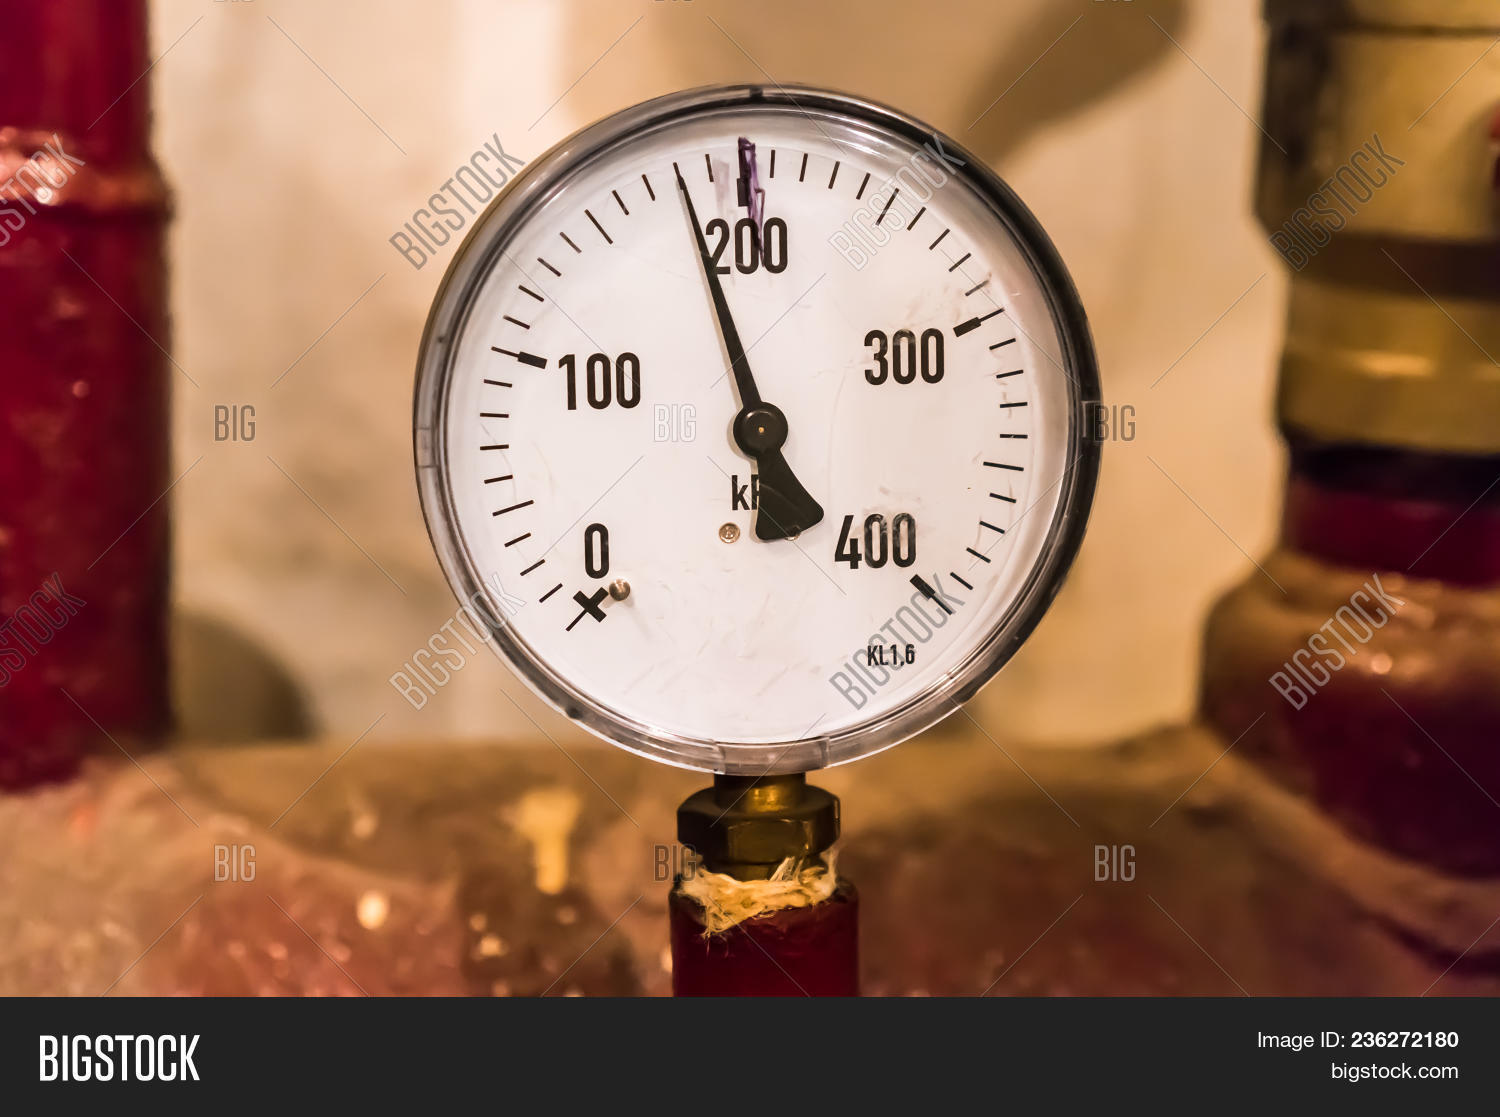 Closein Boiler Close Manometer Image Photo Free Trial Bigstock